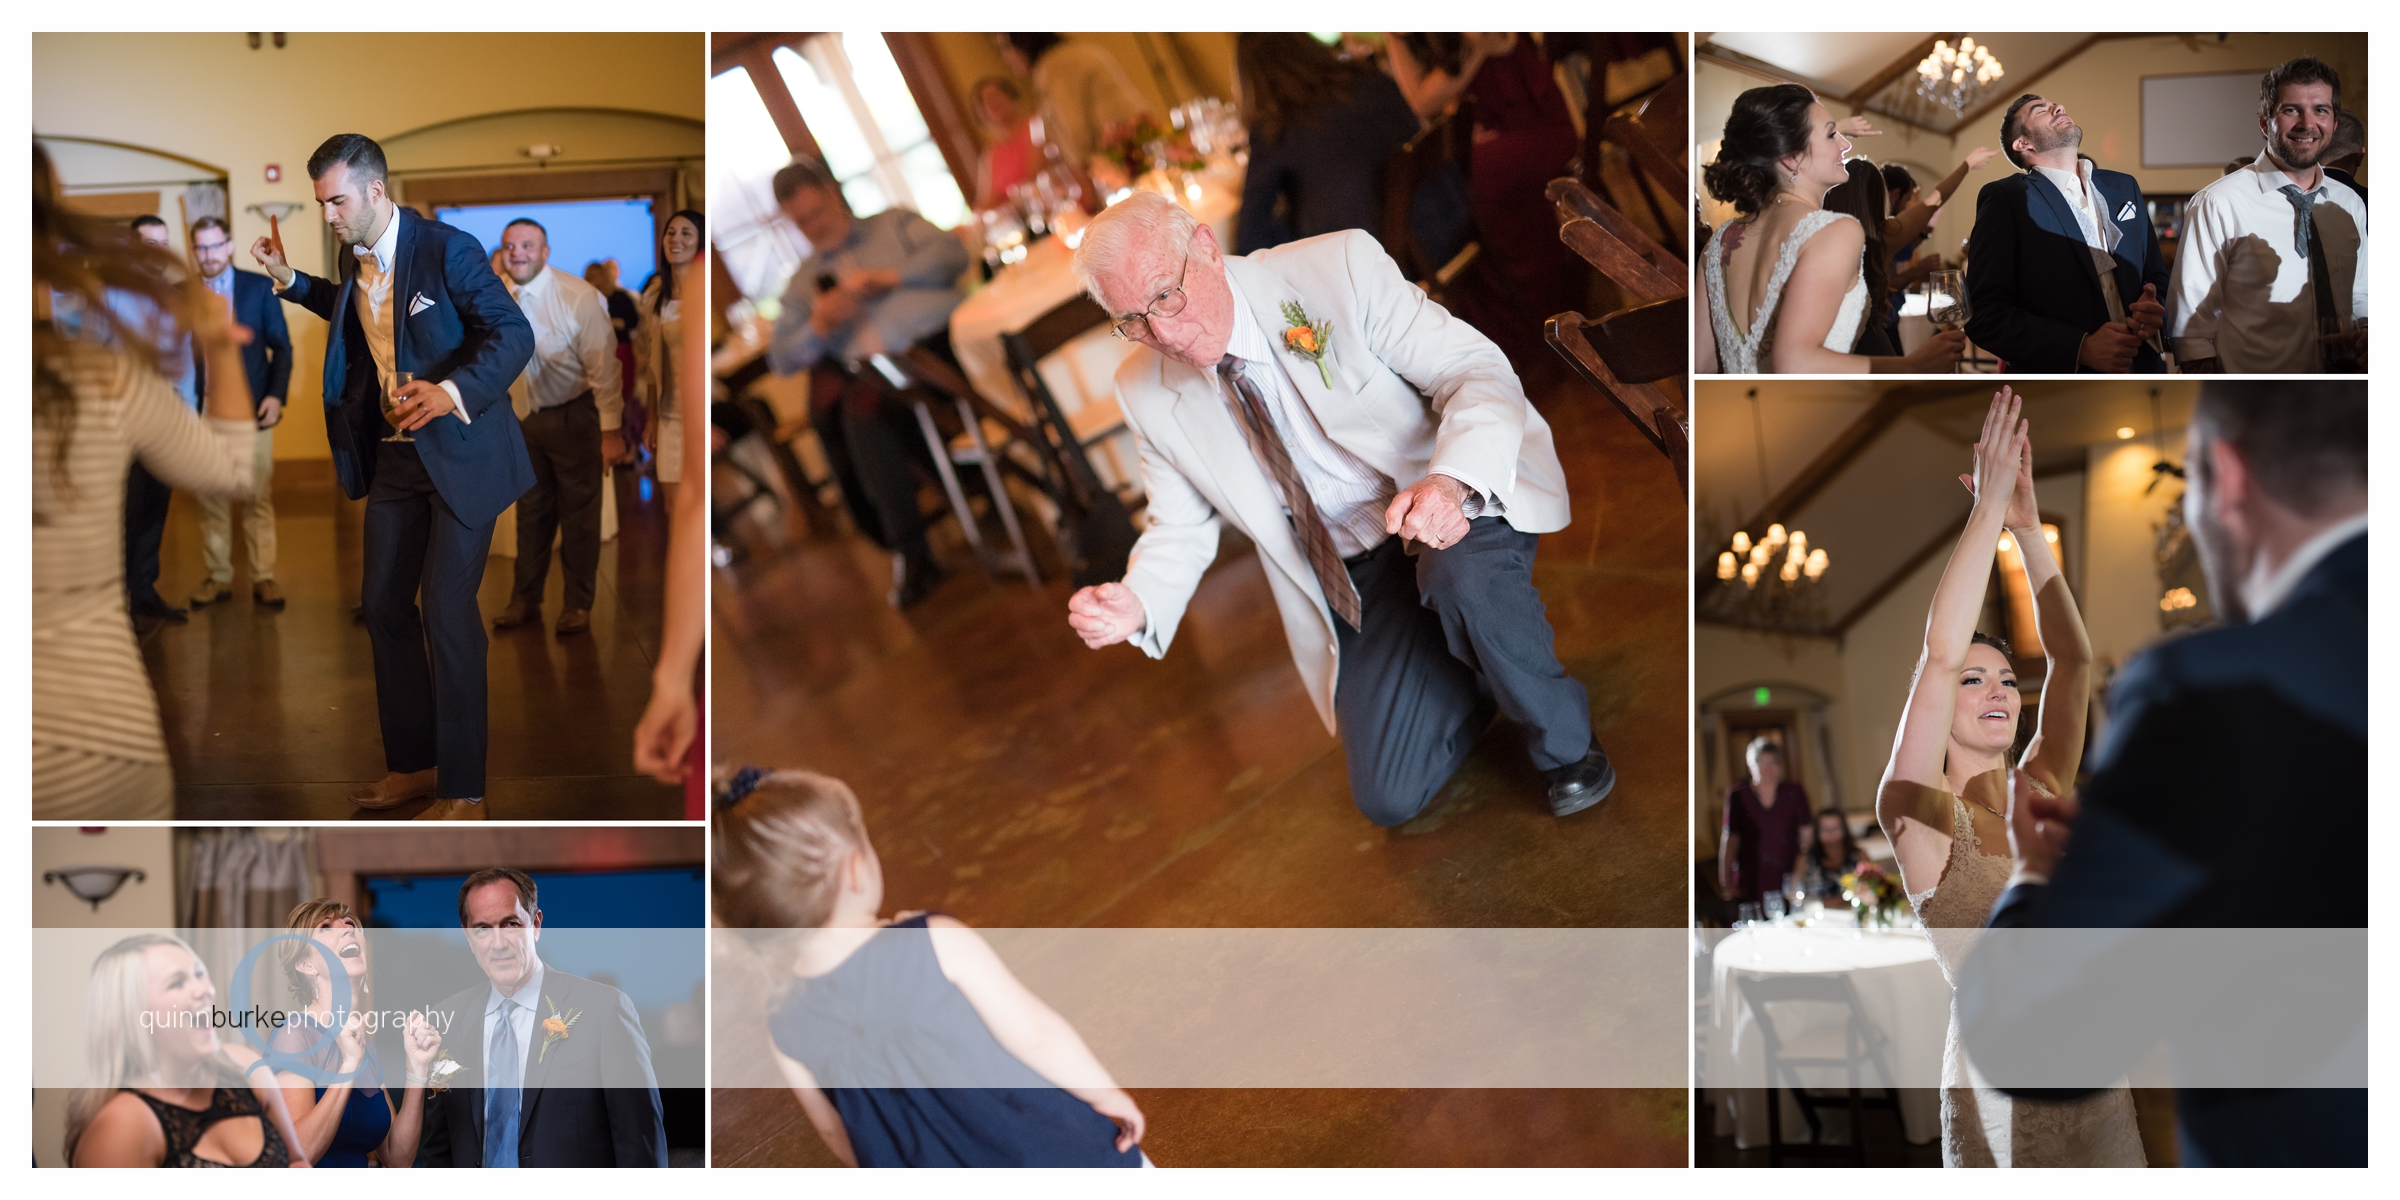 guests dancing at vineyard wedding